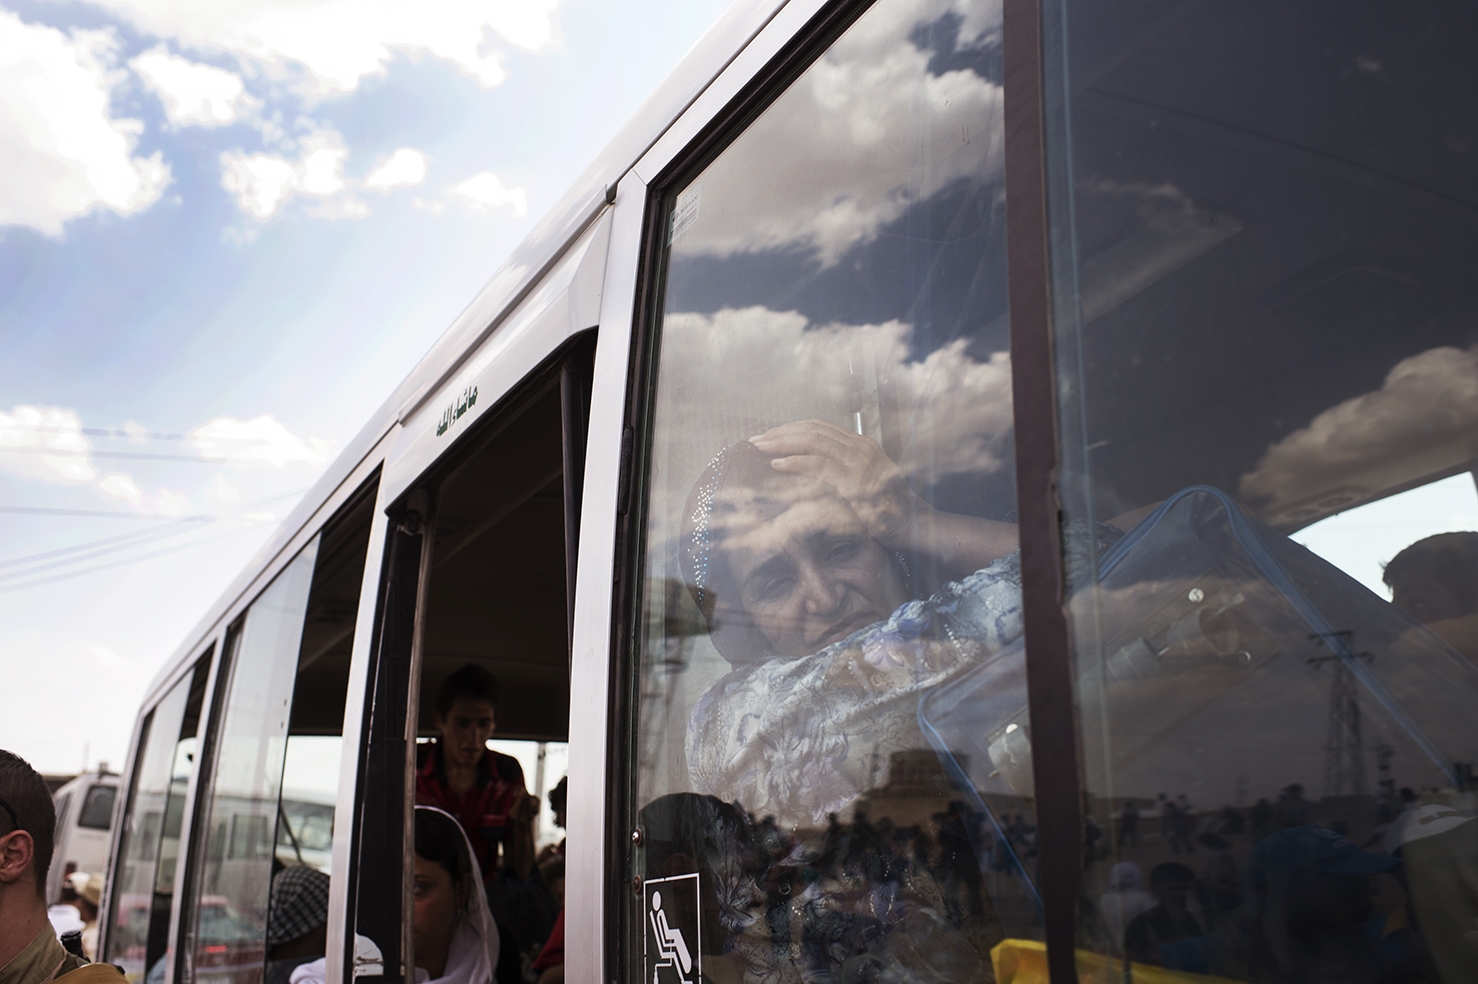 A woman waits on a bus as thousands of Syrians who crossed from Syria into Northern Iraq at the Sahela border point scramble to get onto buses destined for refugee camps in Erbil, in Dahuk, Northern Iraq, August 21, 2013.  The United Nations High Commission for Refugees estimates that over 30,000 Syrians have crossed into Northern Iraq since the border was re-opened last week, and roughly three to four thousand continue to cross daily.  The mostly ethnically Kurdish refugees are fleeing increasing insecurity, economic strife, and a shortage of electricity, water, and food in their areas. (Credit: Lynsey Addario for The New York Times)